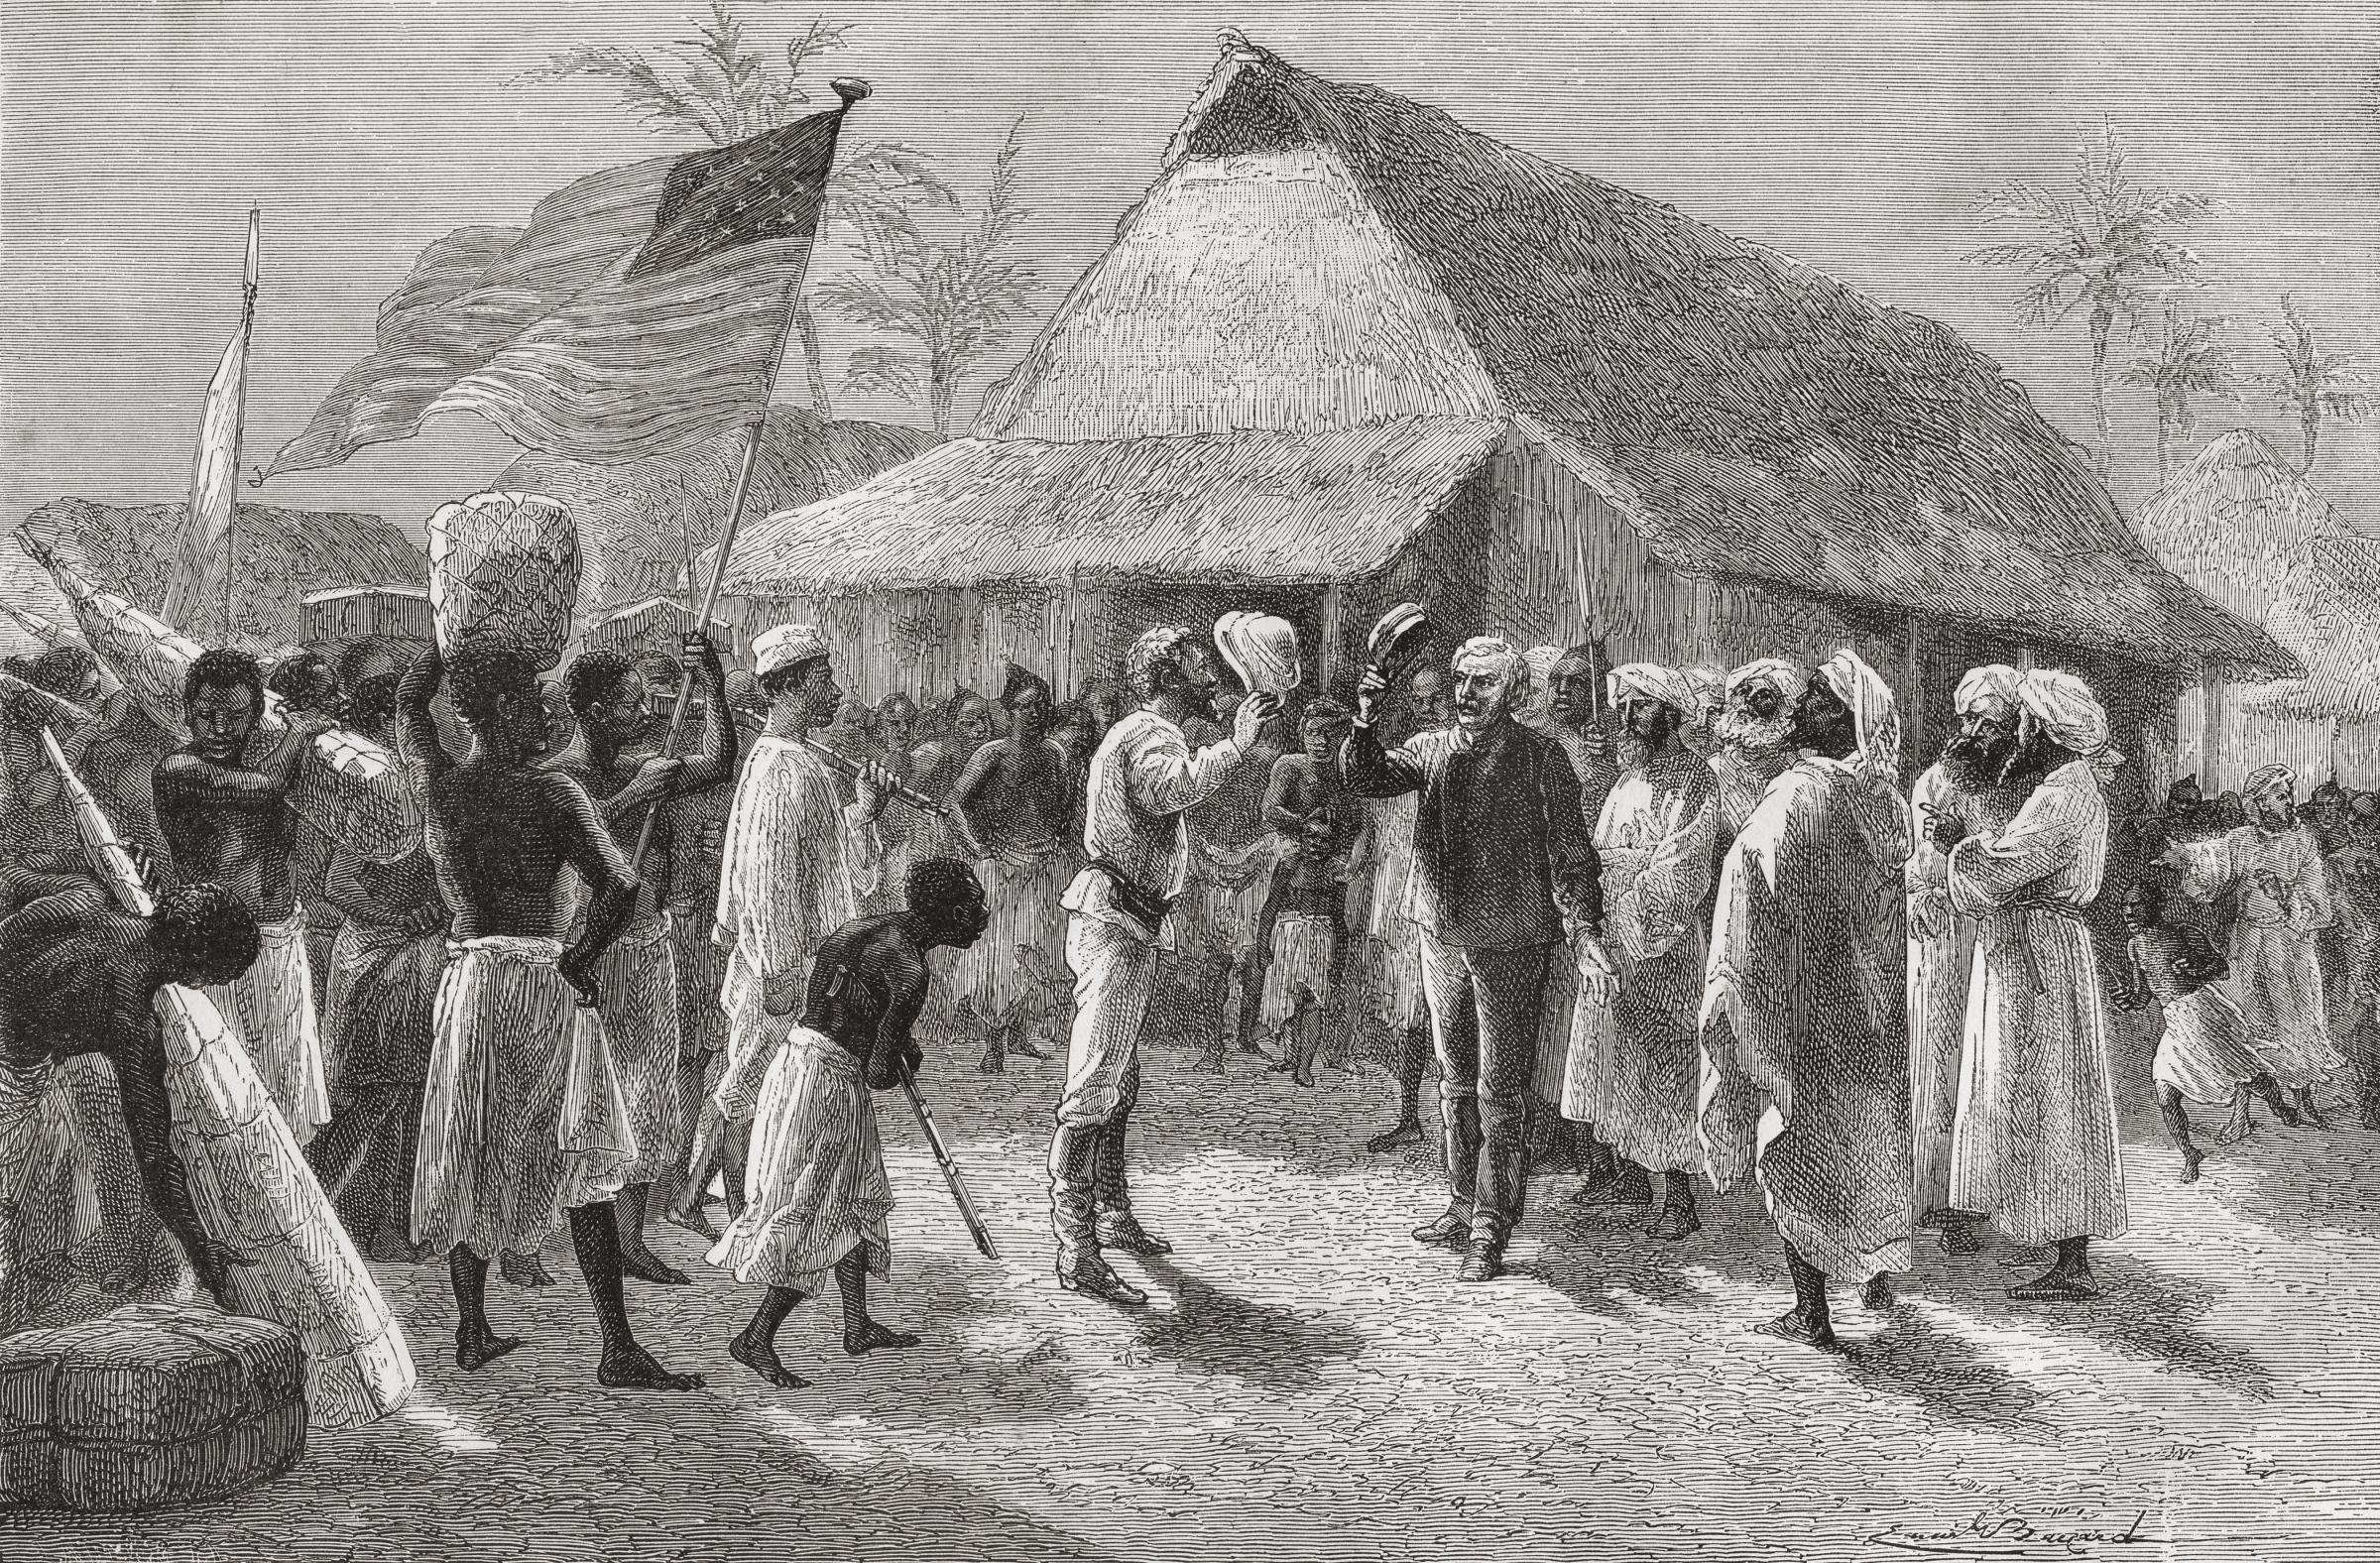 A depiction of the explorer's famous meeting with Henry Morton Stanley